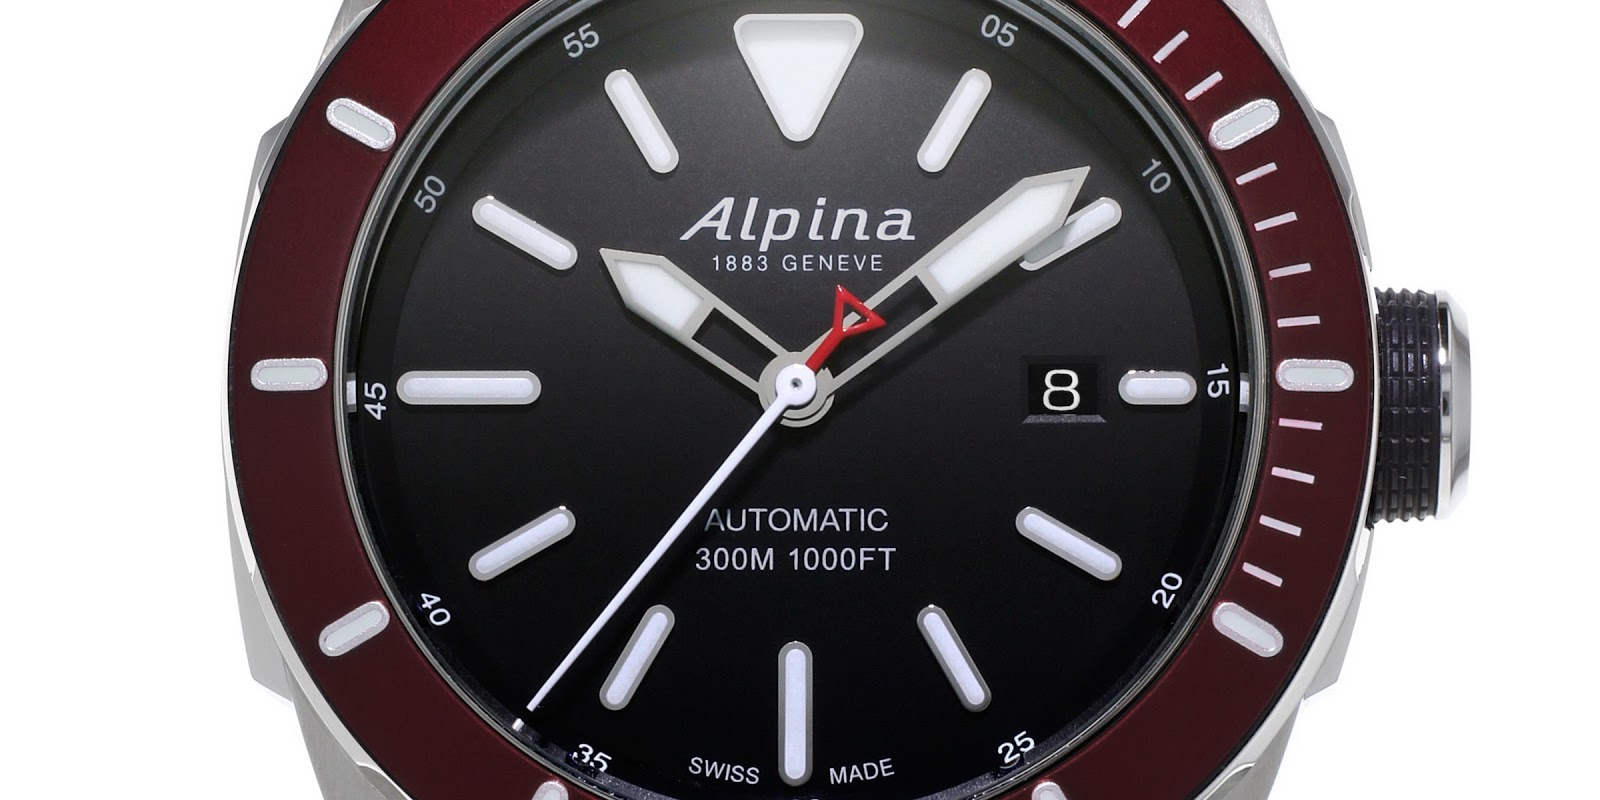 ALPINA Seastrong Diver AUTO Luxury Watches - Alpina diver watch